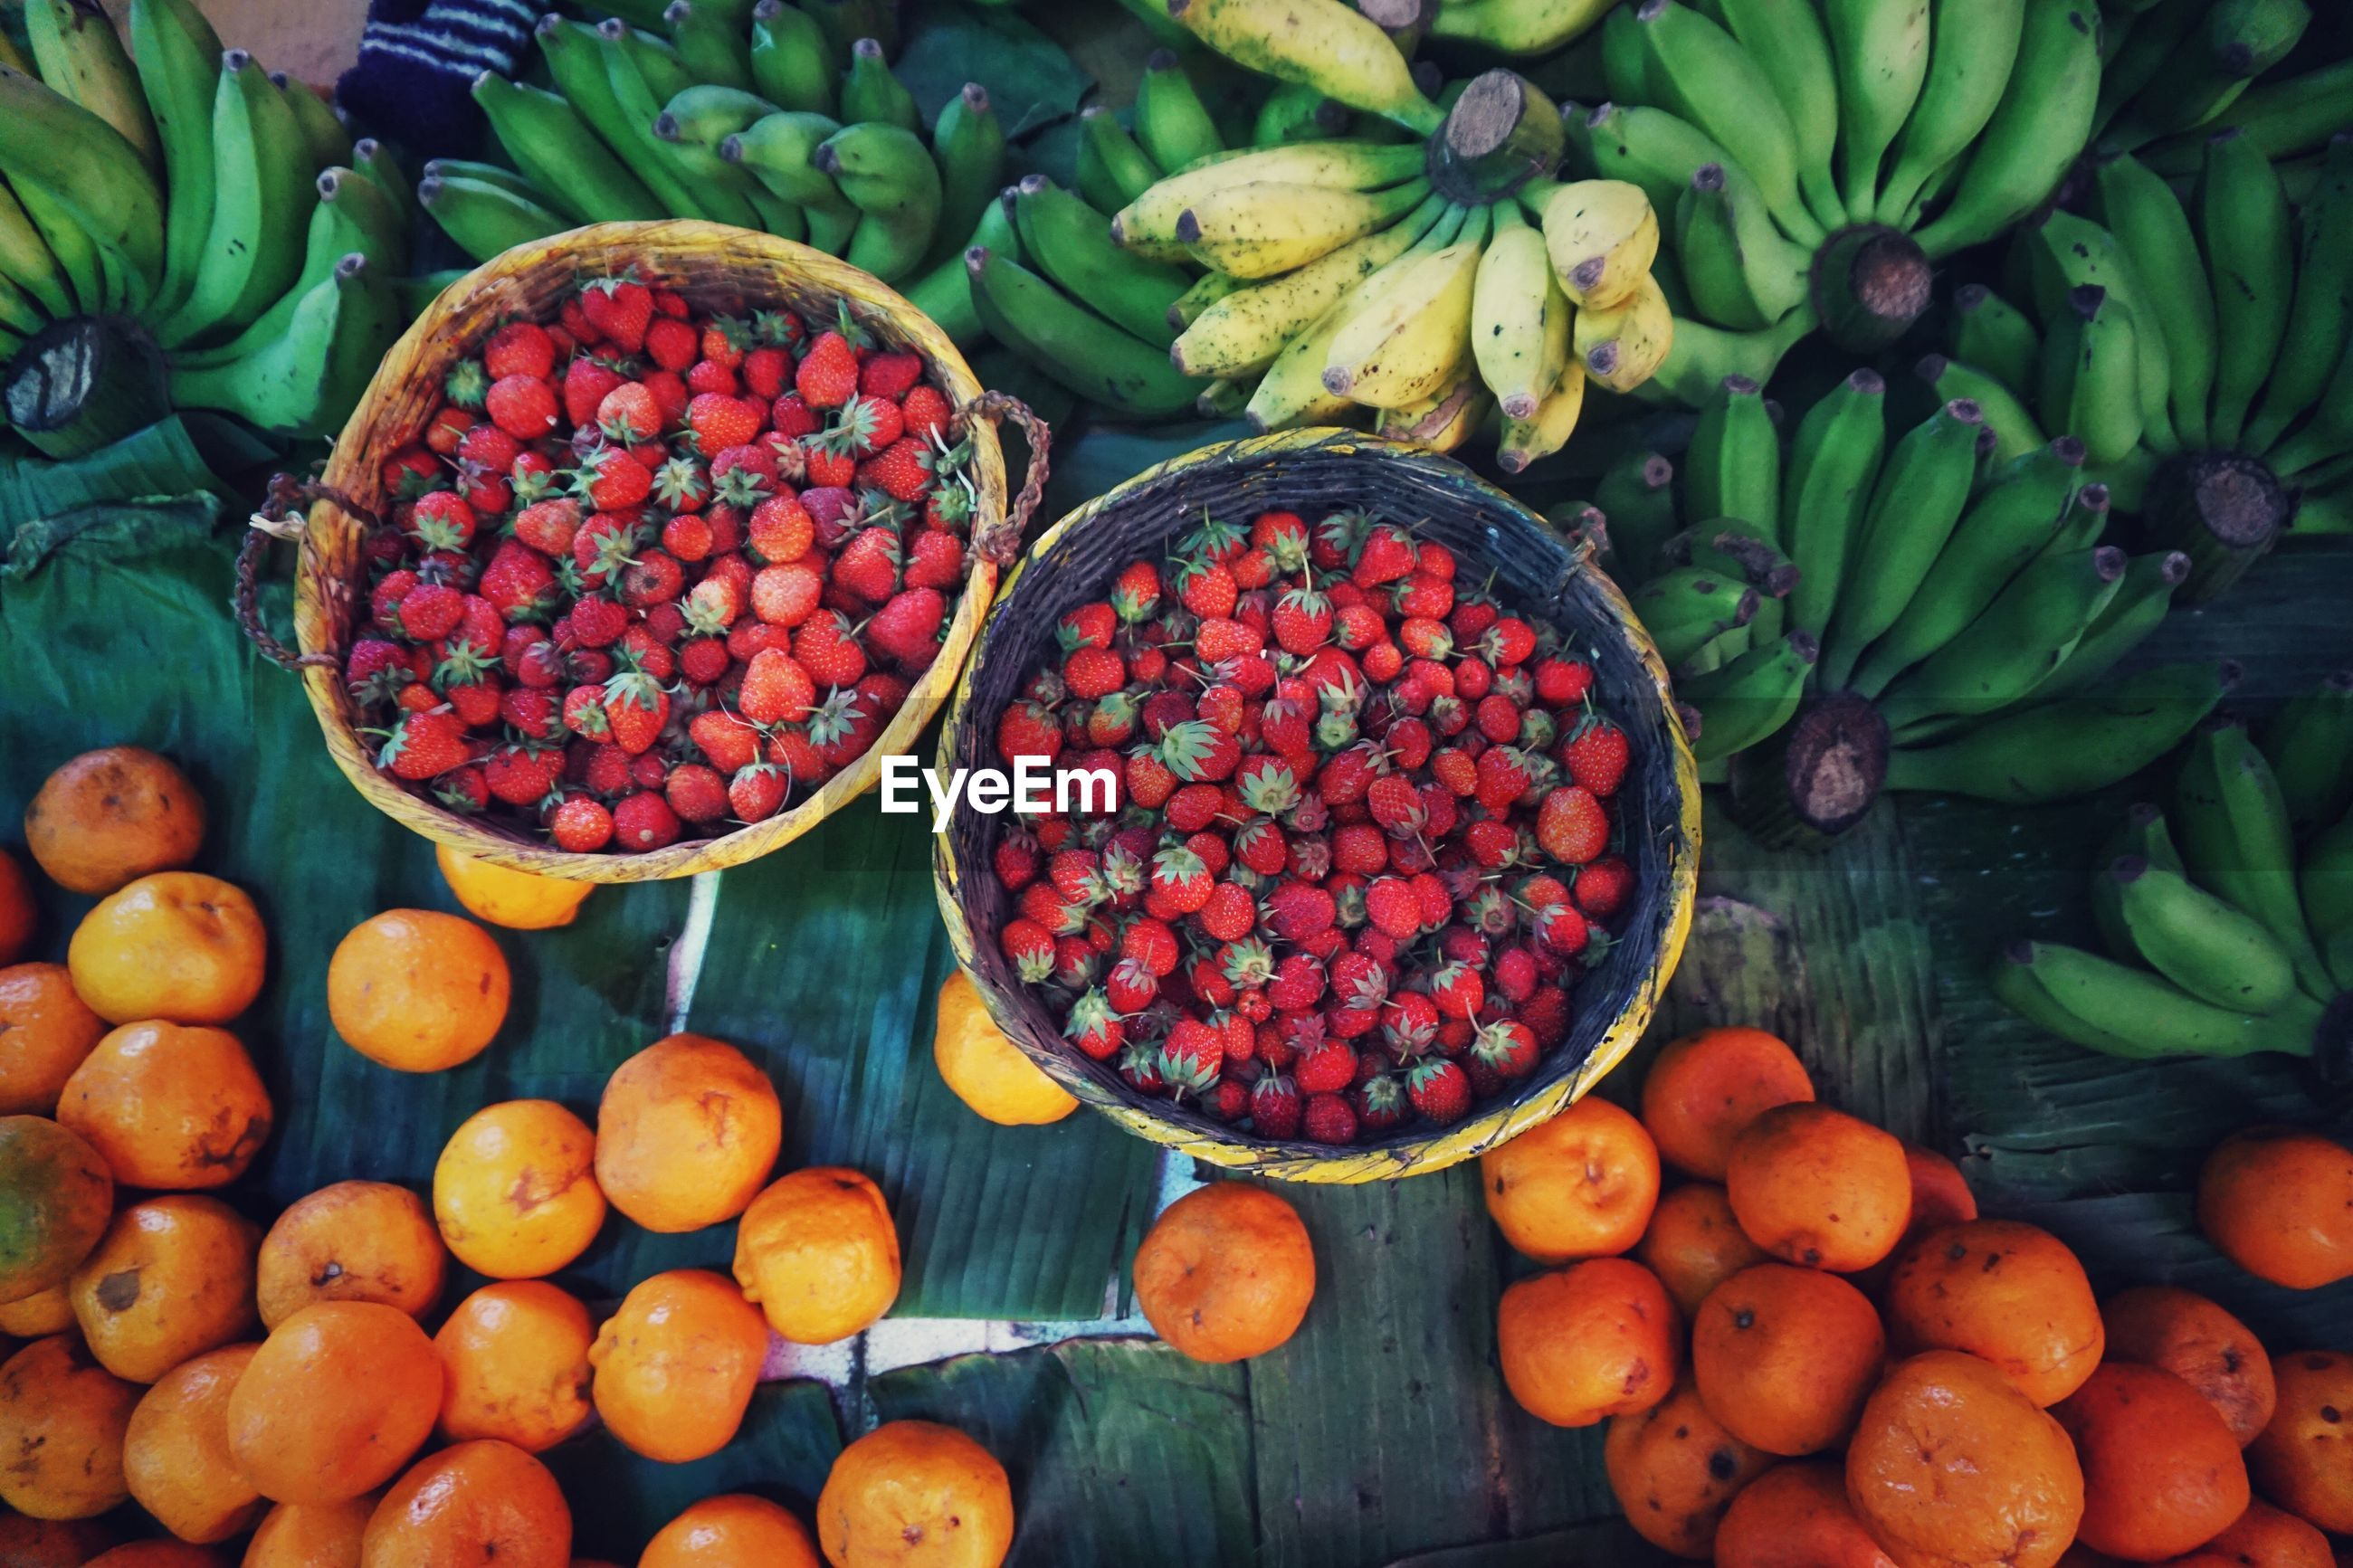 High angle view of various fruits in market for sale